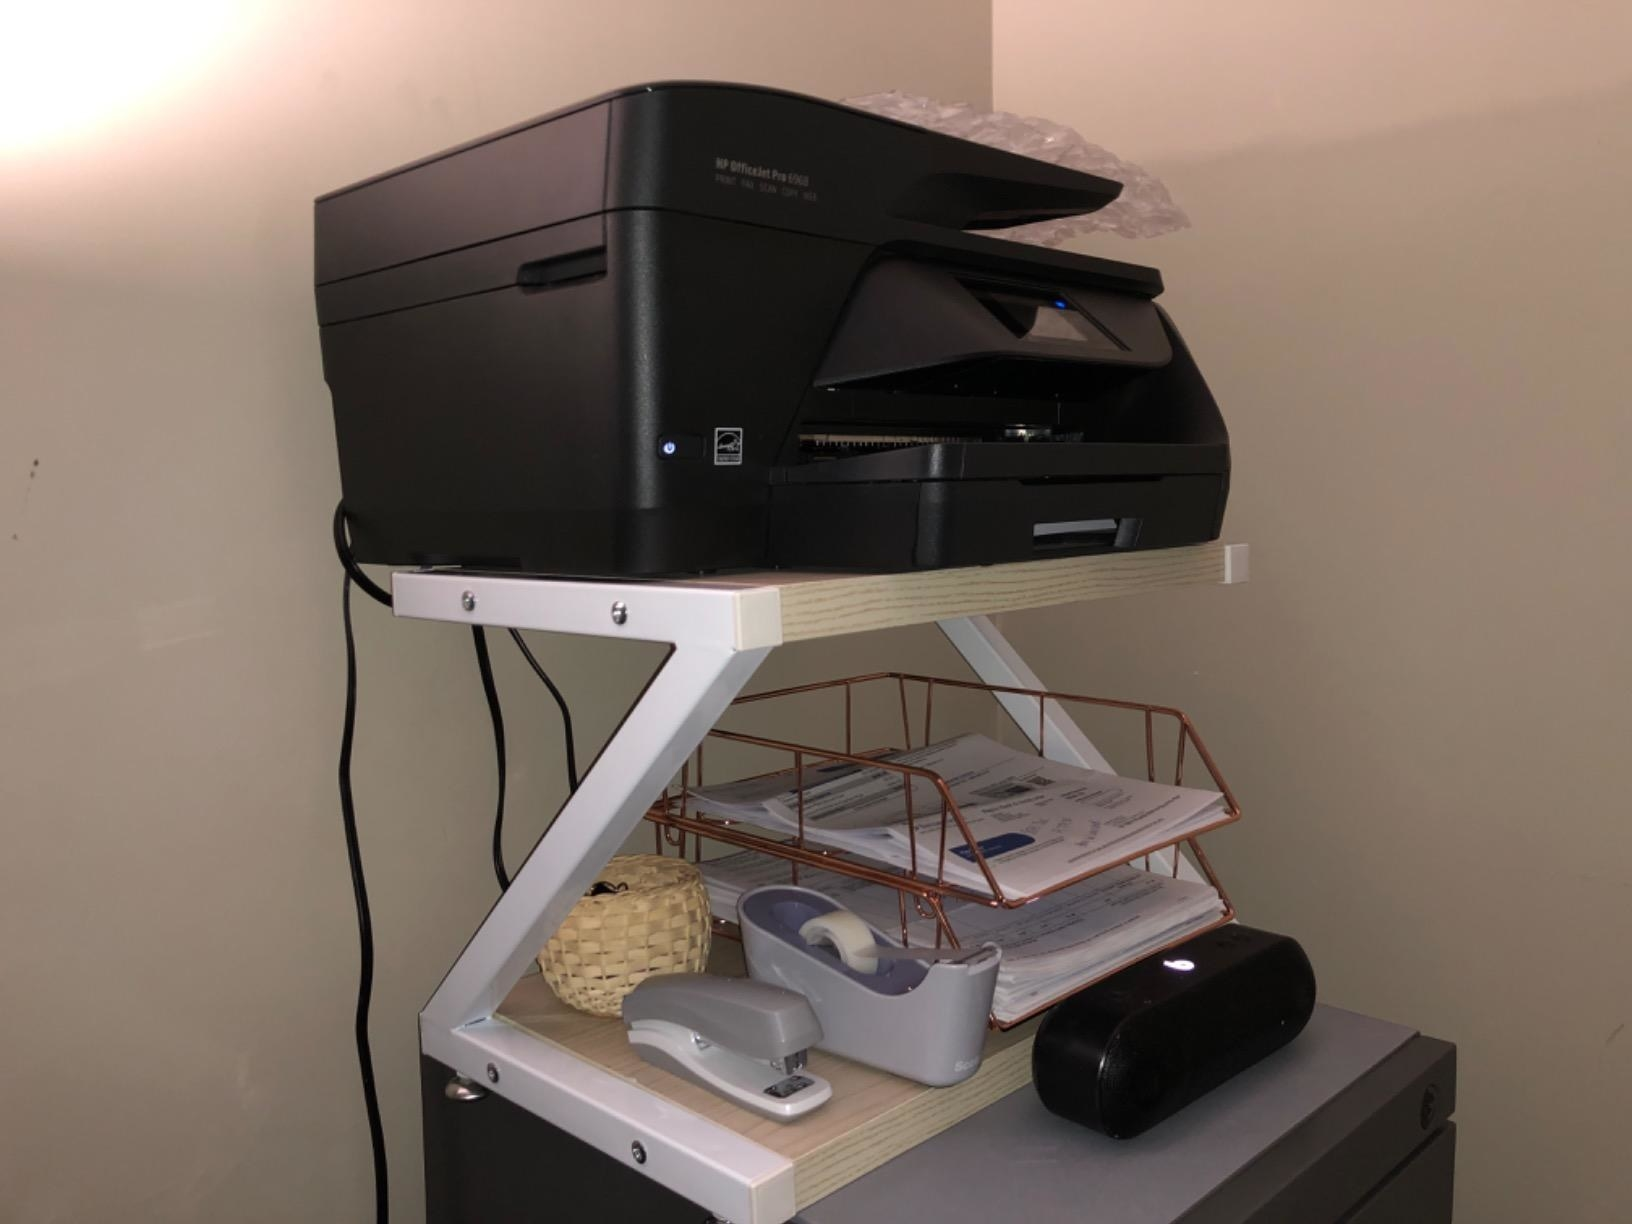 reviewer image of a big printer on the top shelf of the printer desktop stand and office supplies on the lower shelf